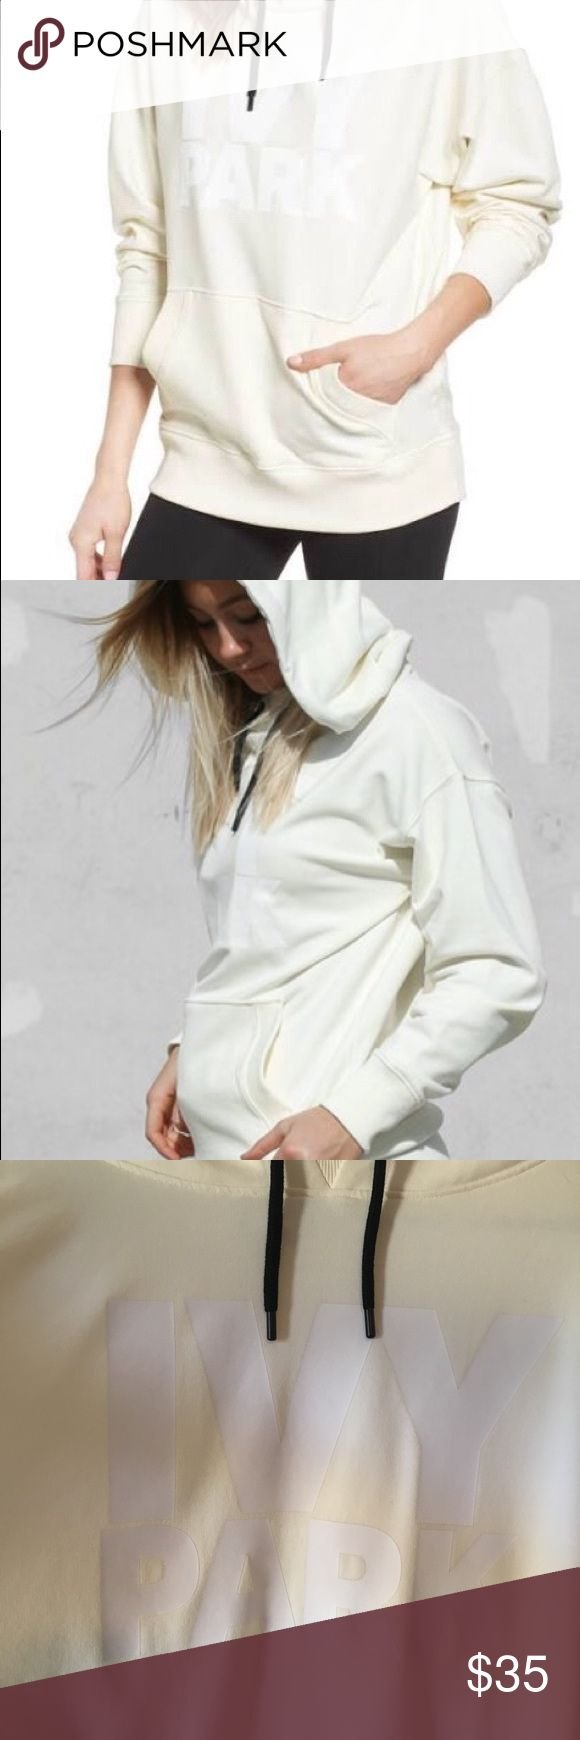 IVY PARK Logo Hoodie Cream Beyoncé streetwear style meets a lounge essential on this oversized cotton-blend sweatshirt with an exaggerated hood, ribbed- inset funnel neck and a cool logo graphic. This cream hoodie can be wore oversized. Will fit someone who wears a med to large, but it's a true large in size. Hoodie has never been worn or washed! IVY PARK Tops Sweatshirts & Hoodies